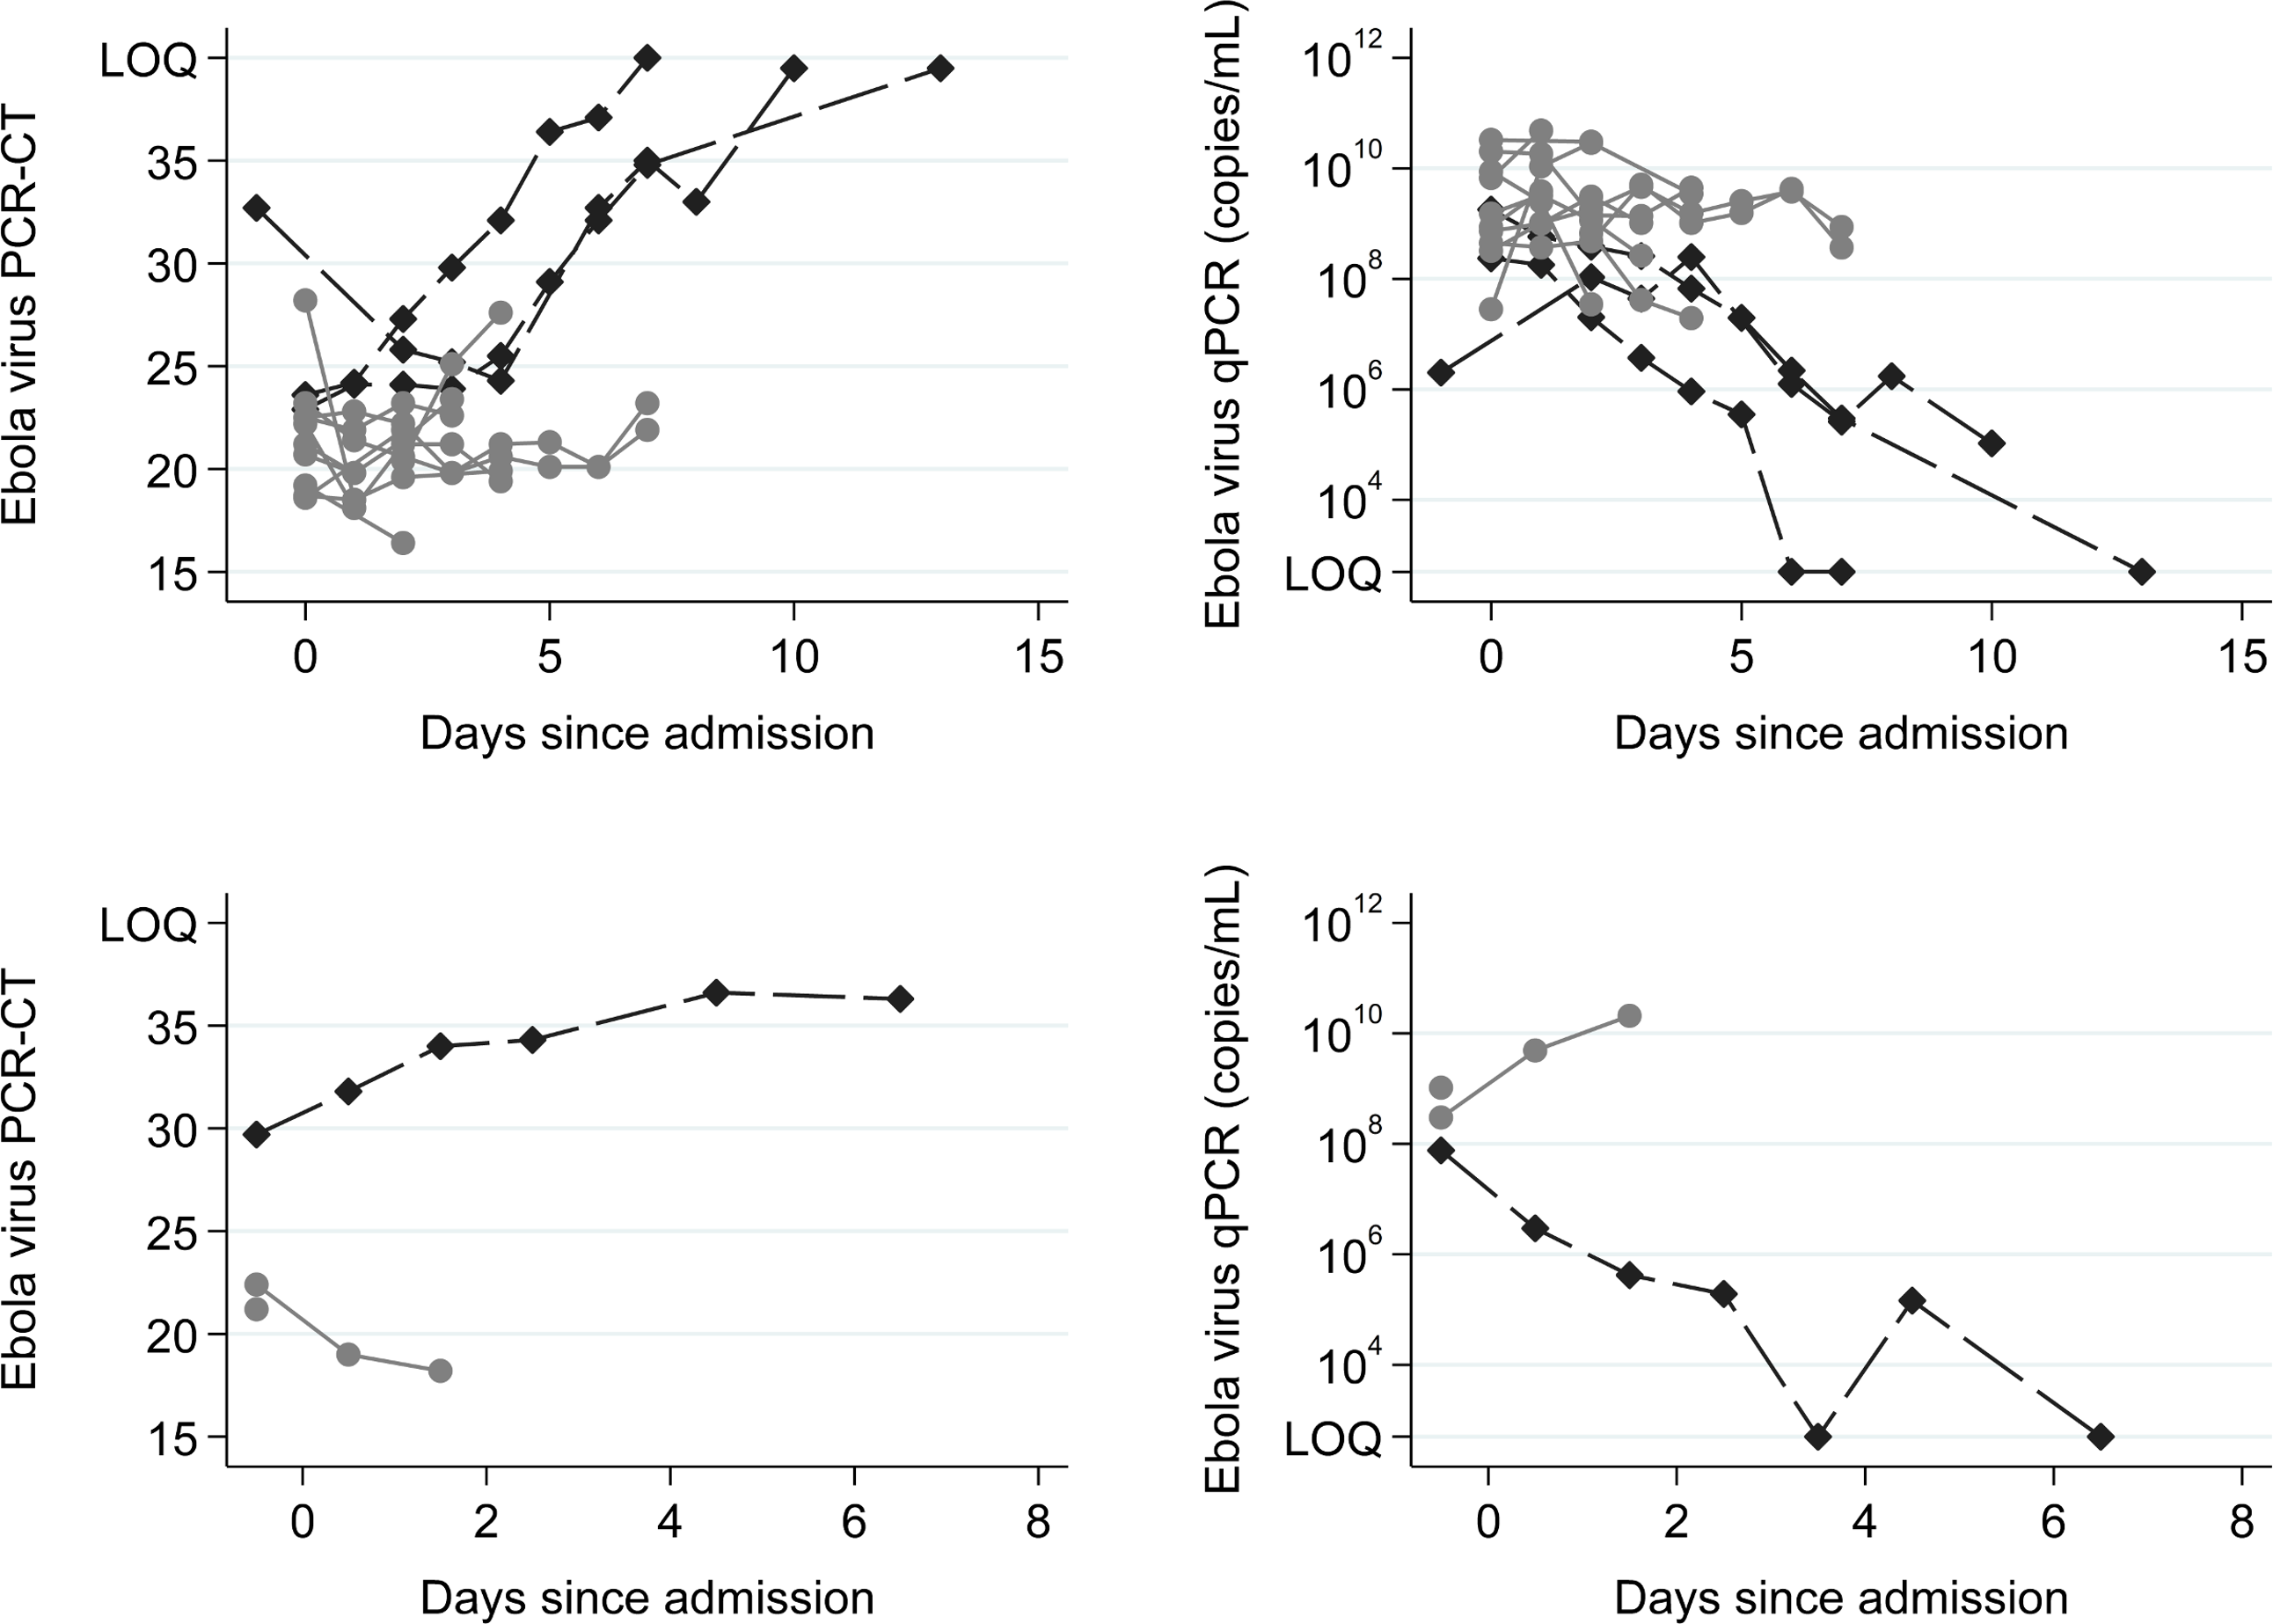 Ebola virus RT-PCR cycle threshold values and RNA copies/ml over time.